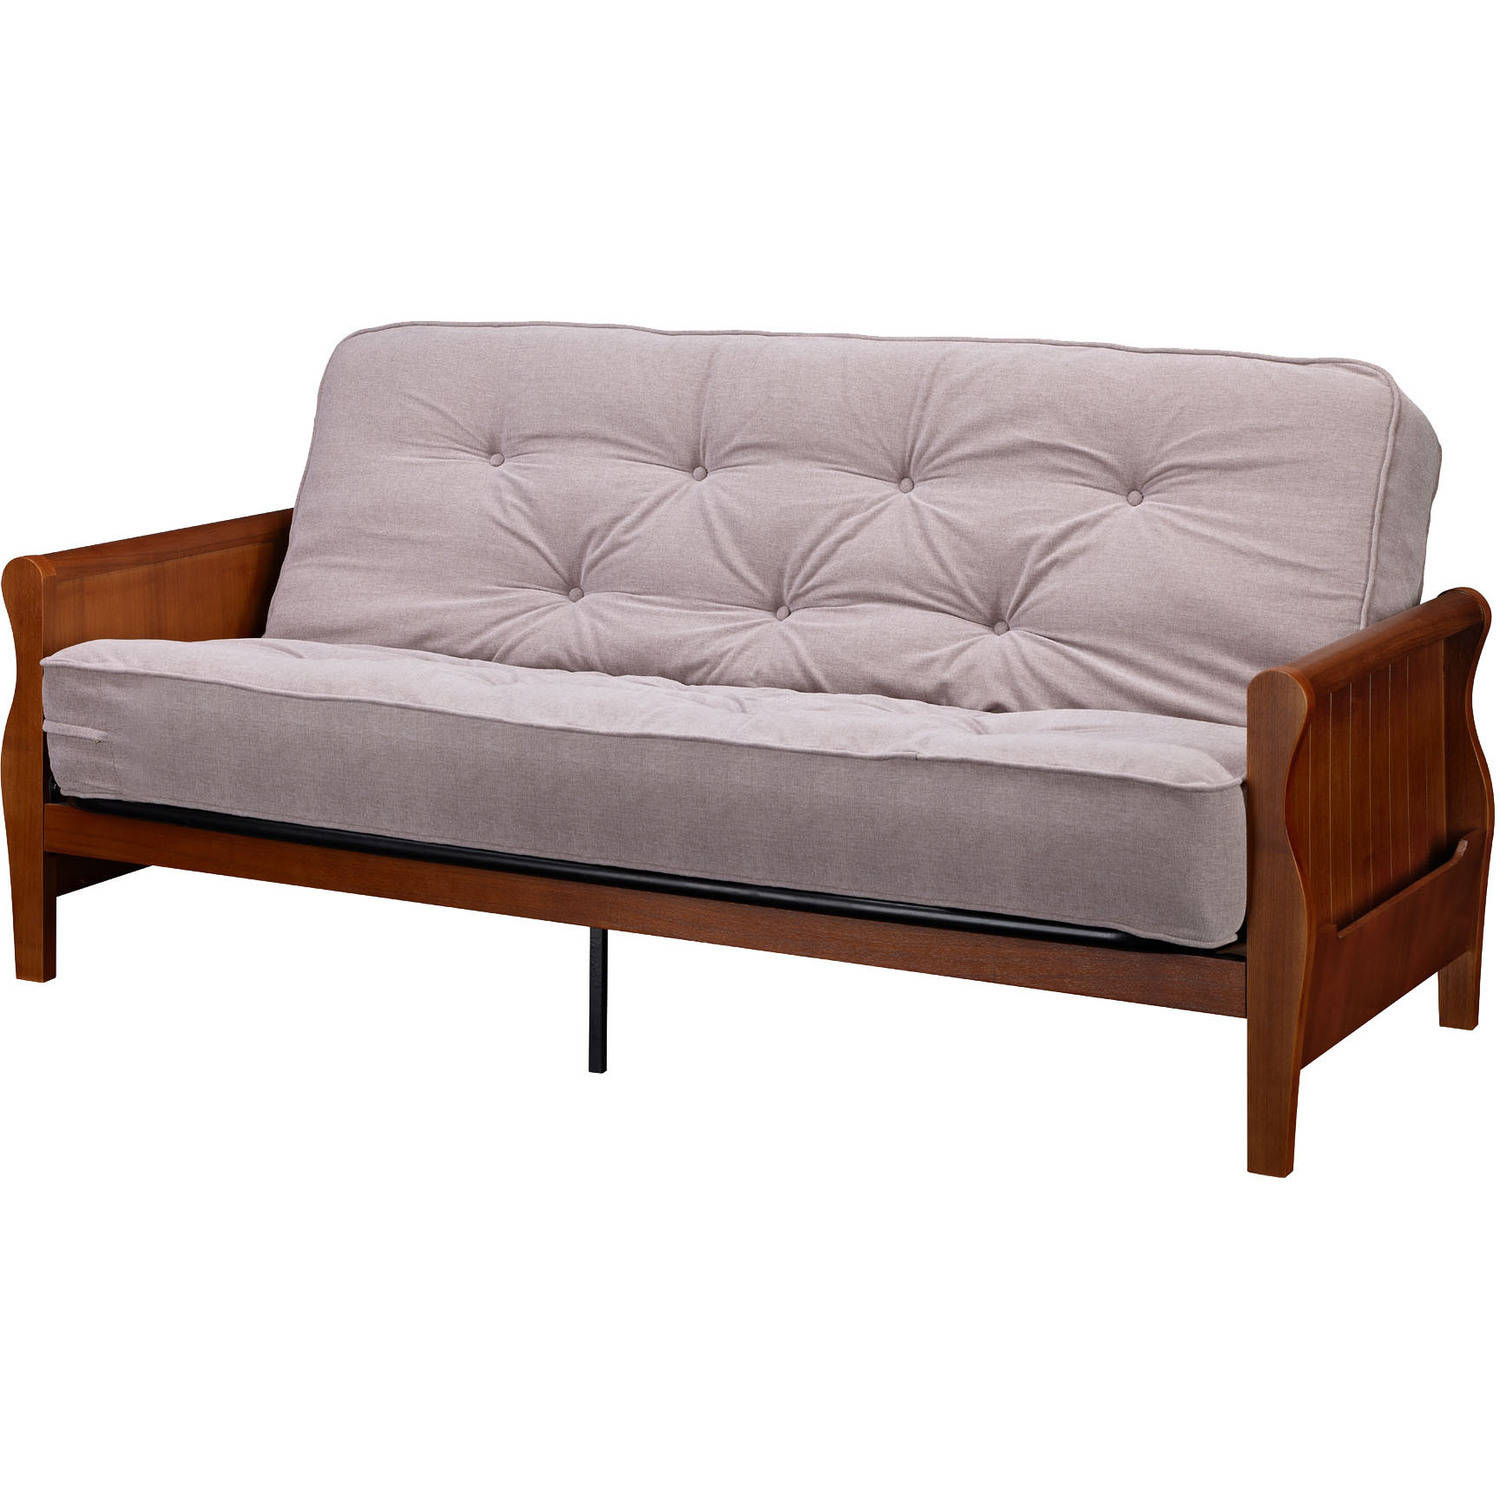 mainstays upholstered bed instructions